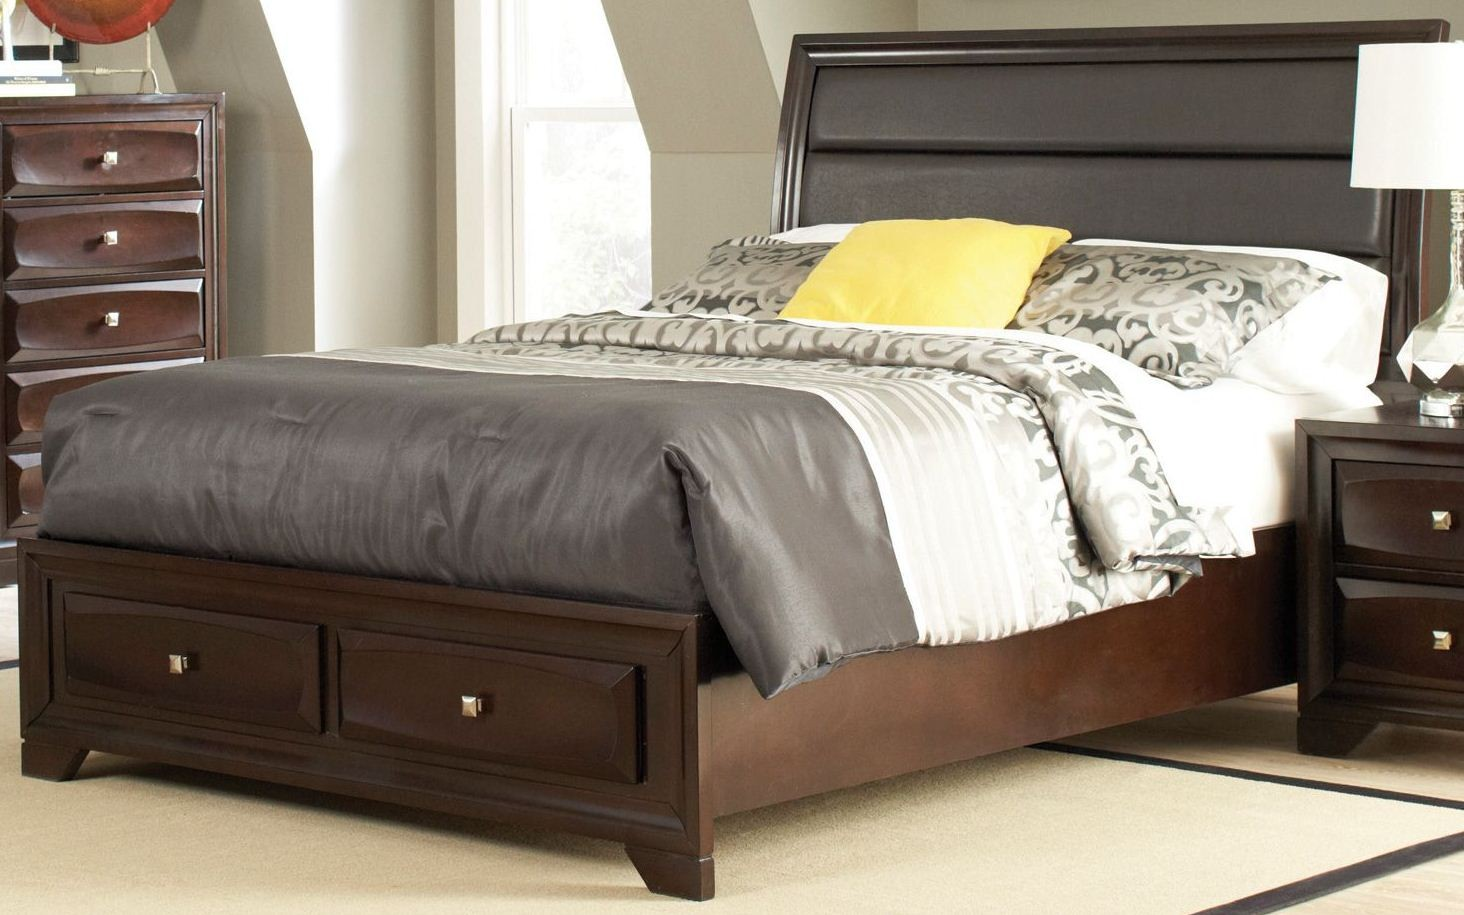 jaxson cal king storage platform bed from coaster 203481kw coleman furniture. Black Bedroom Furniture Sets. Home Design Ideas